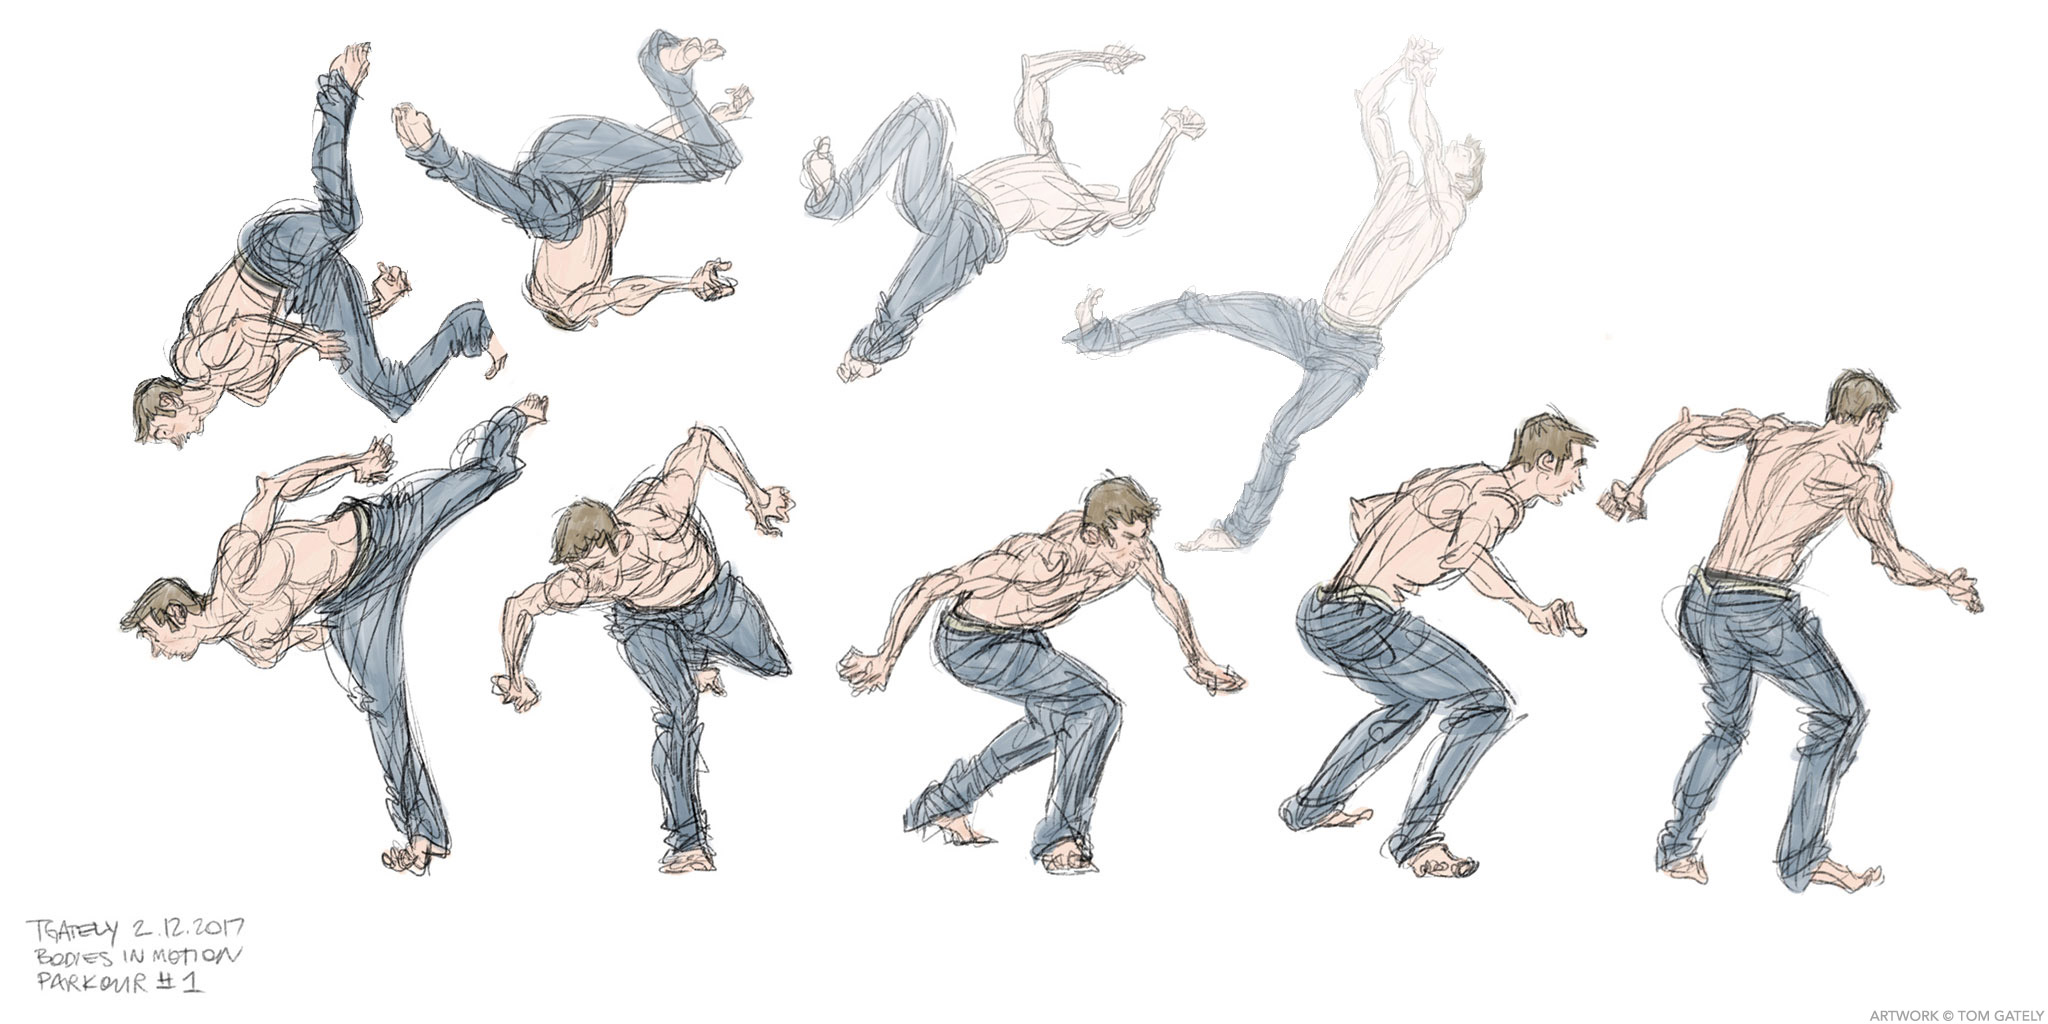 Scott Eaton S Bodies In Motion Dynamic Figure Reference For Artists Art And Inspiration From The Human Body In Motion Bodies In Motion